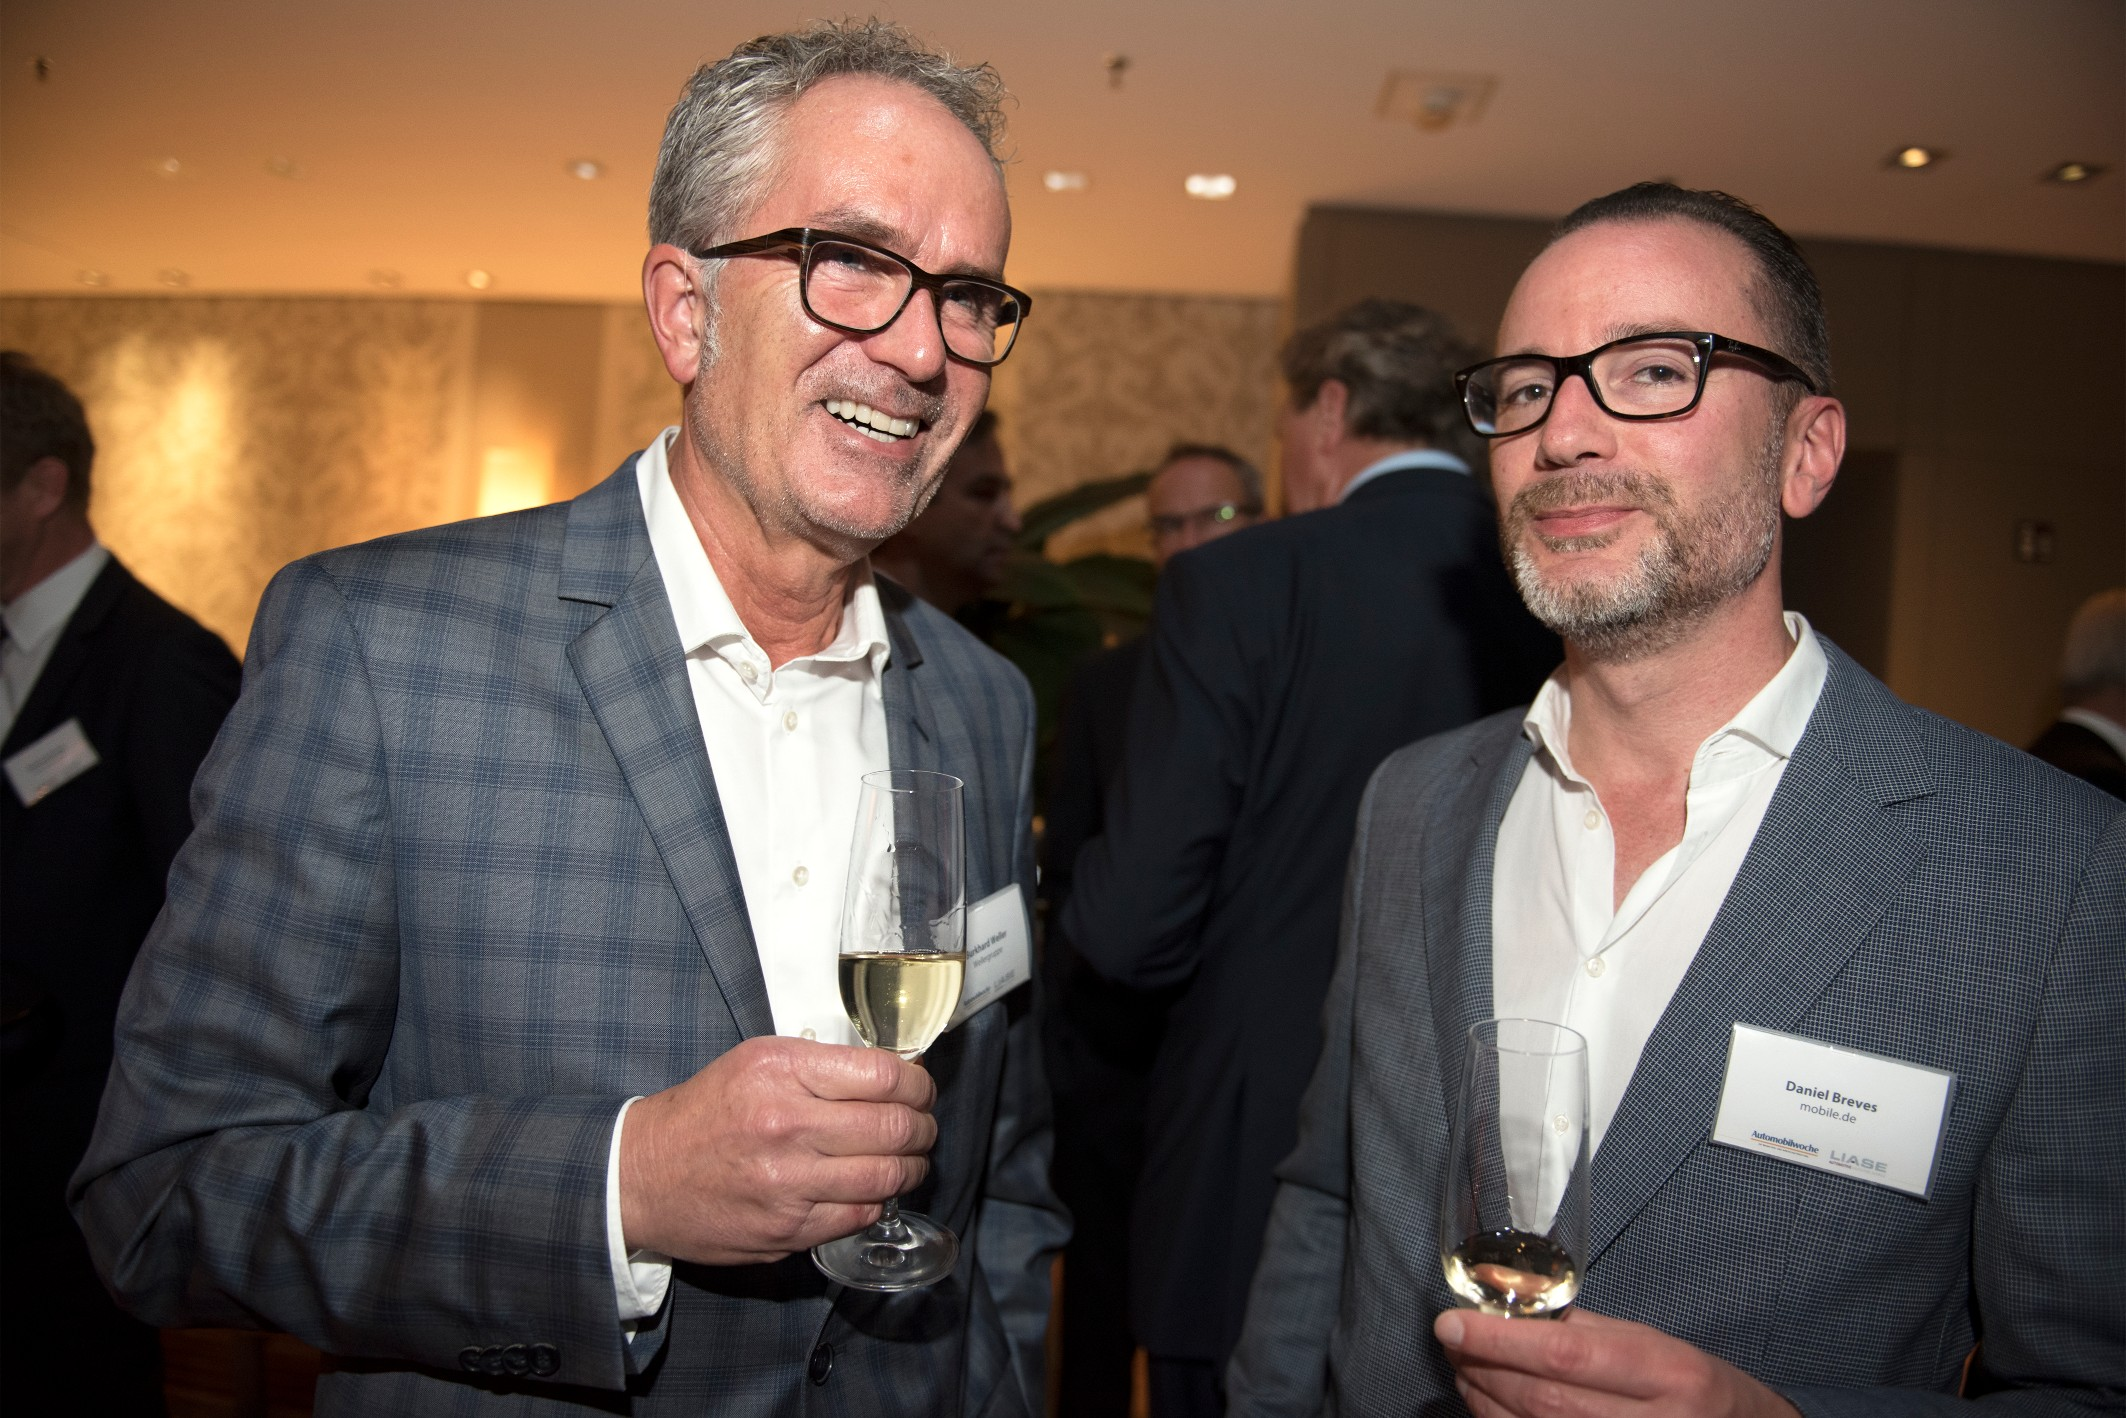 Burkhard Weller (left), CEO of the Wellergroup, and Daniel Breves (right), Commercial Director of mobile.de.